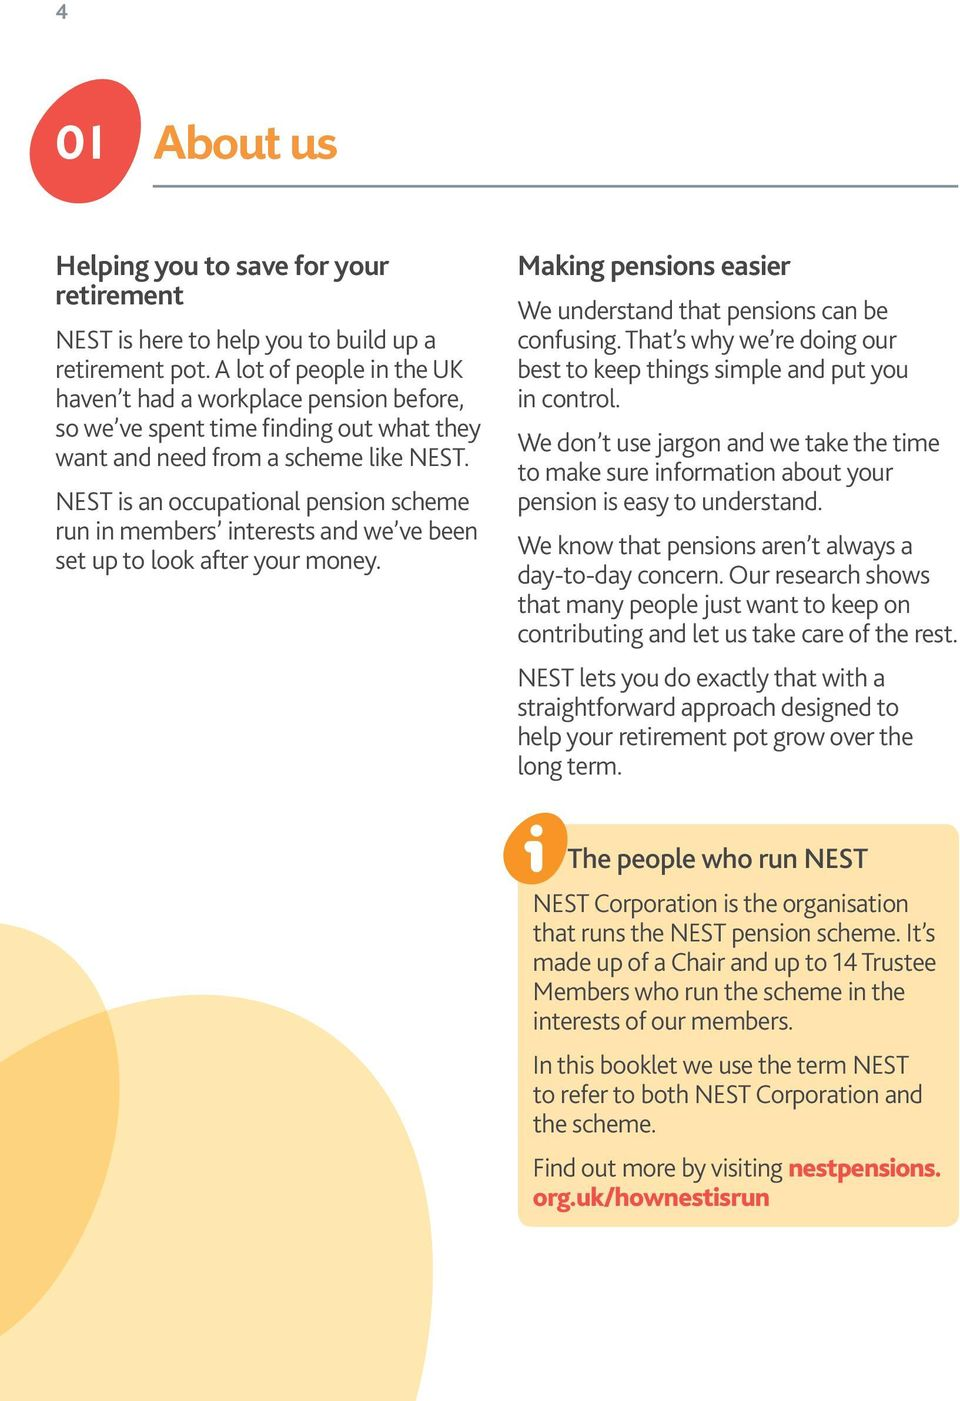 NEST is an occupational pension scheme run in members interests and we ve been set up to look after your money. Making pensions easier We understand that pensions can be confusing.